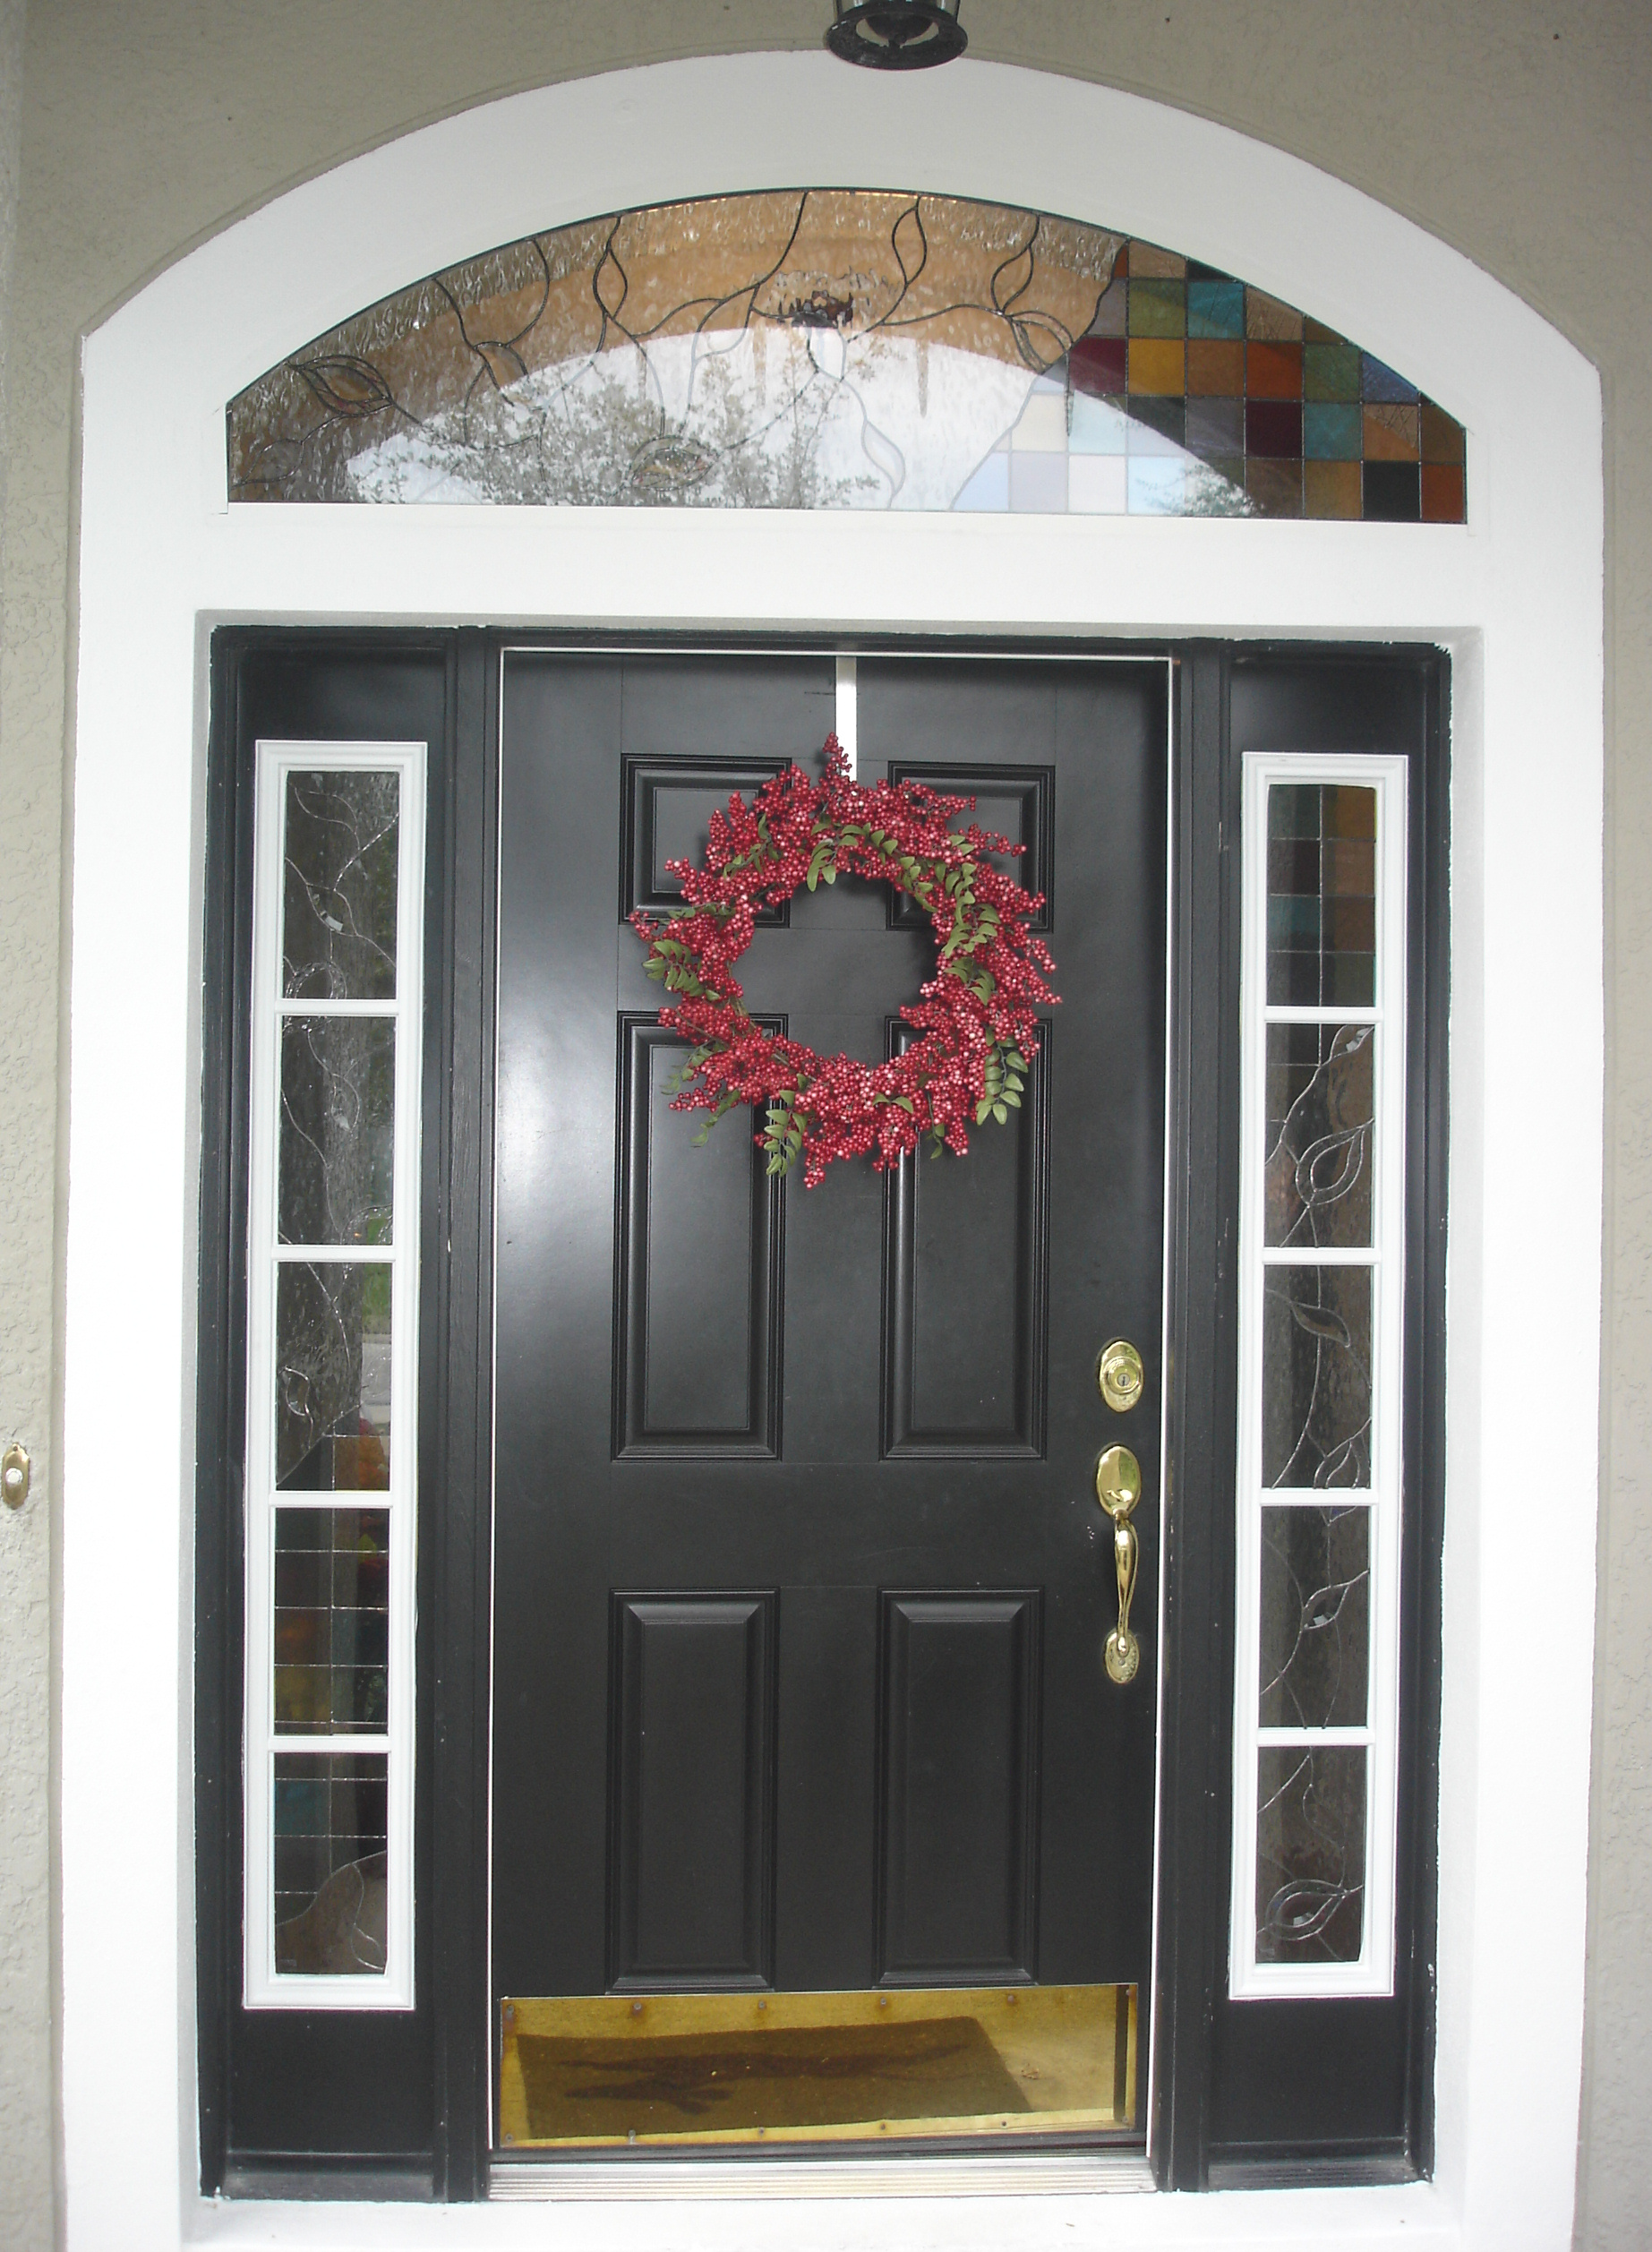 Odl door insert view larger image odl glass insert for entry doors - Odl glass door inserts ...